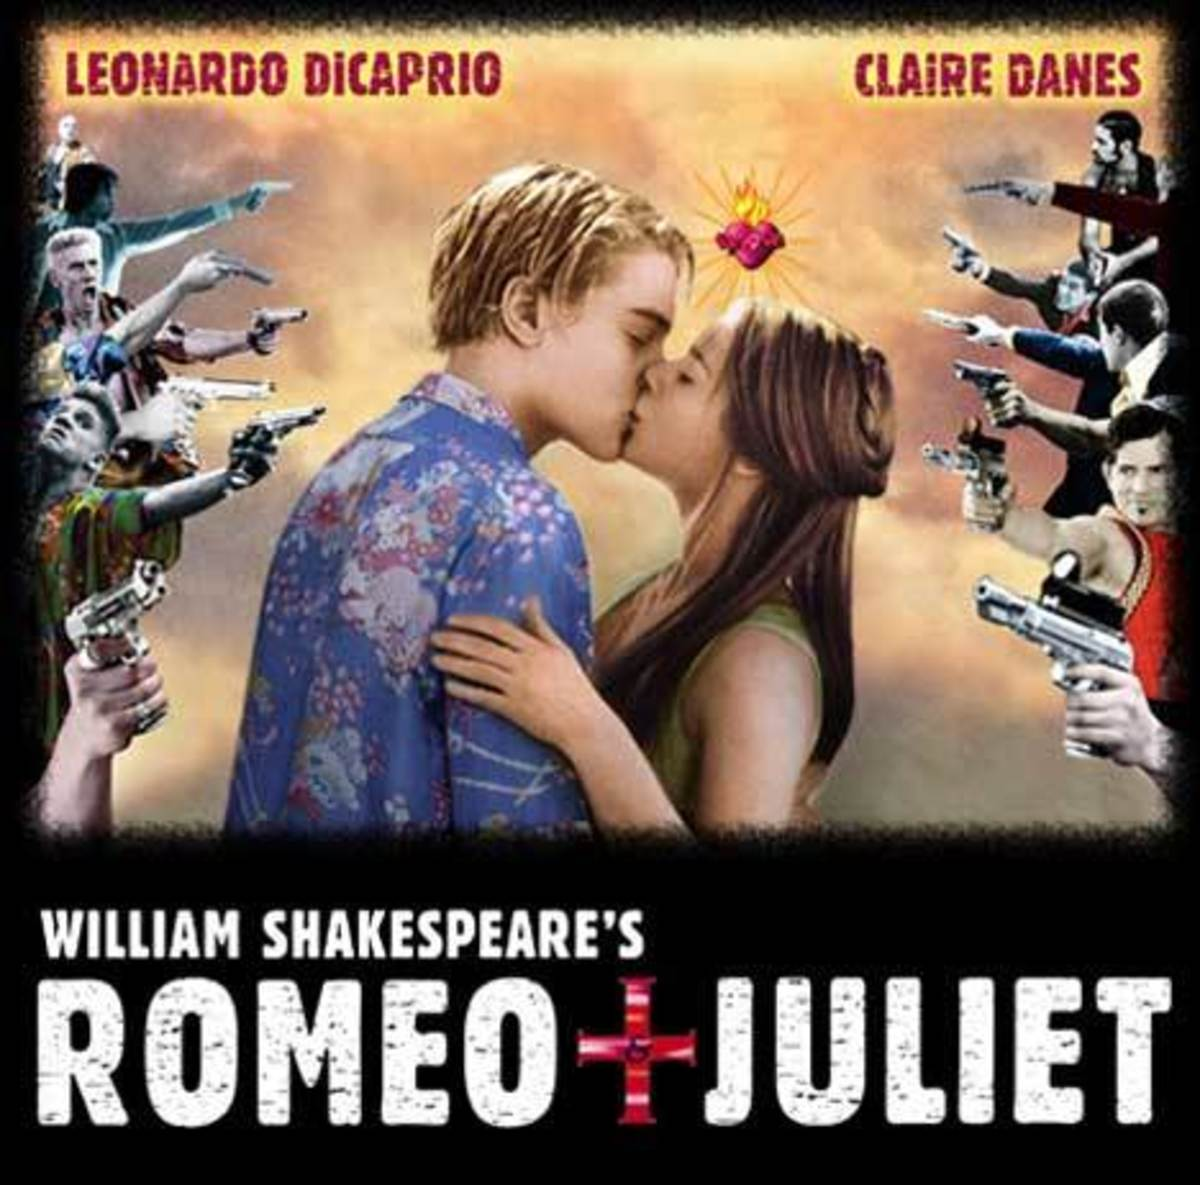 Romeo & Juliet's movie poster